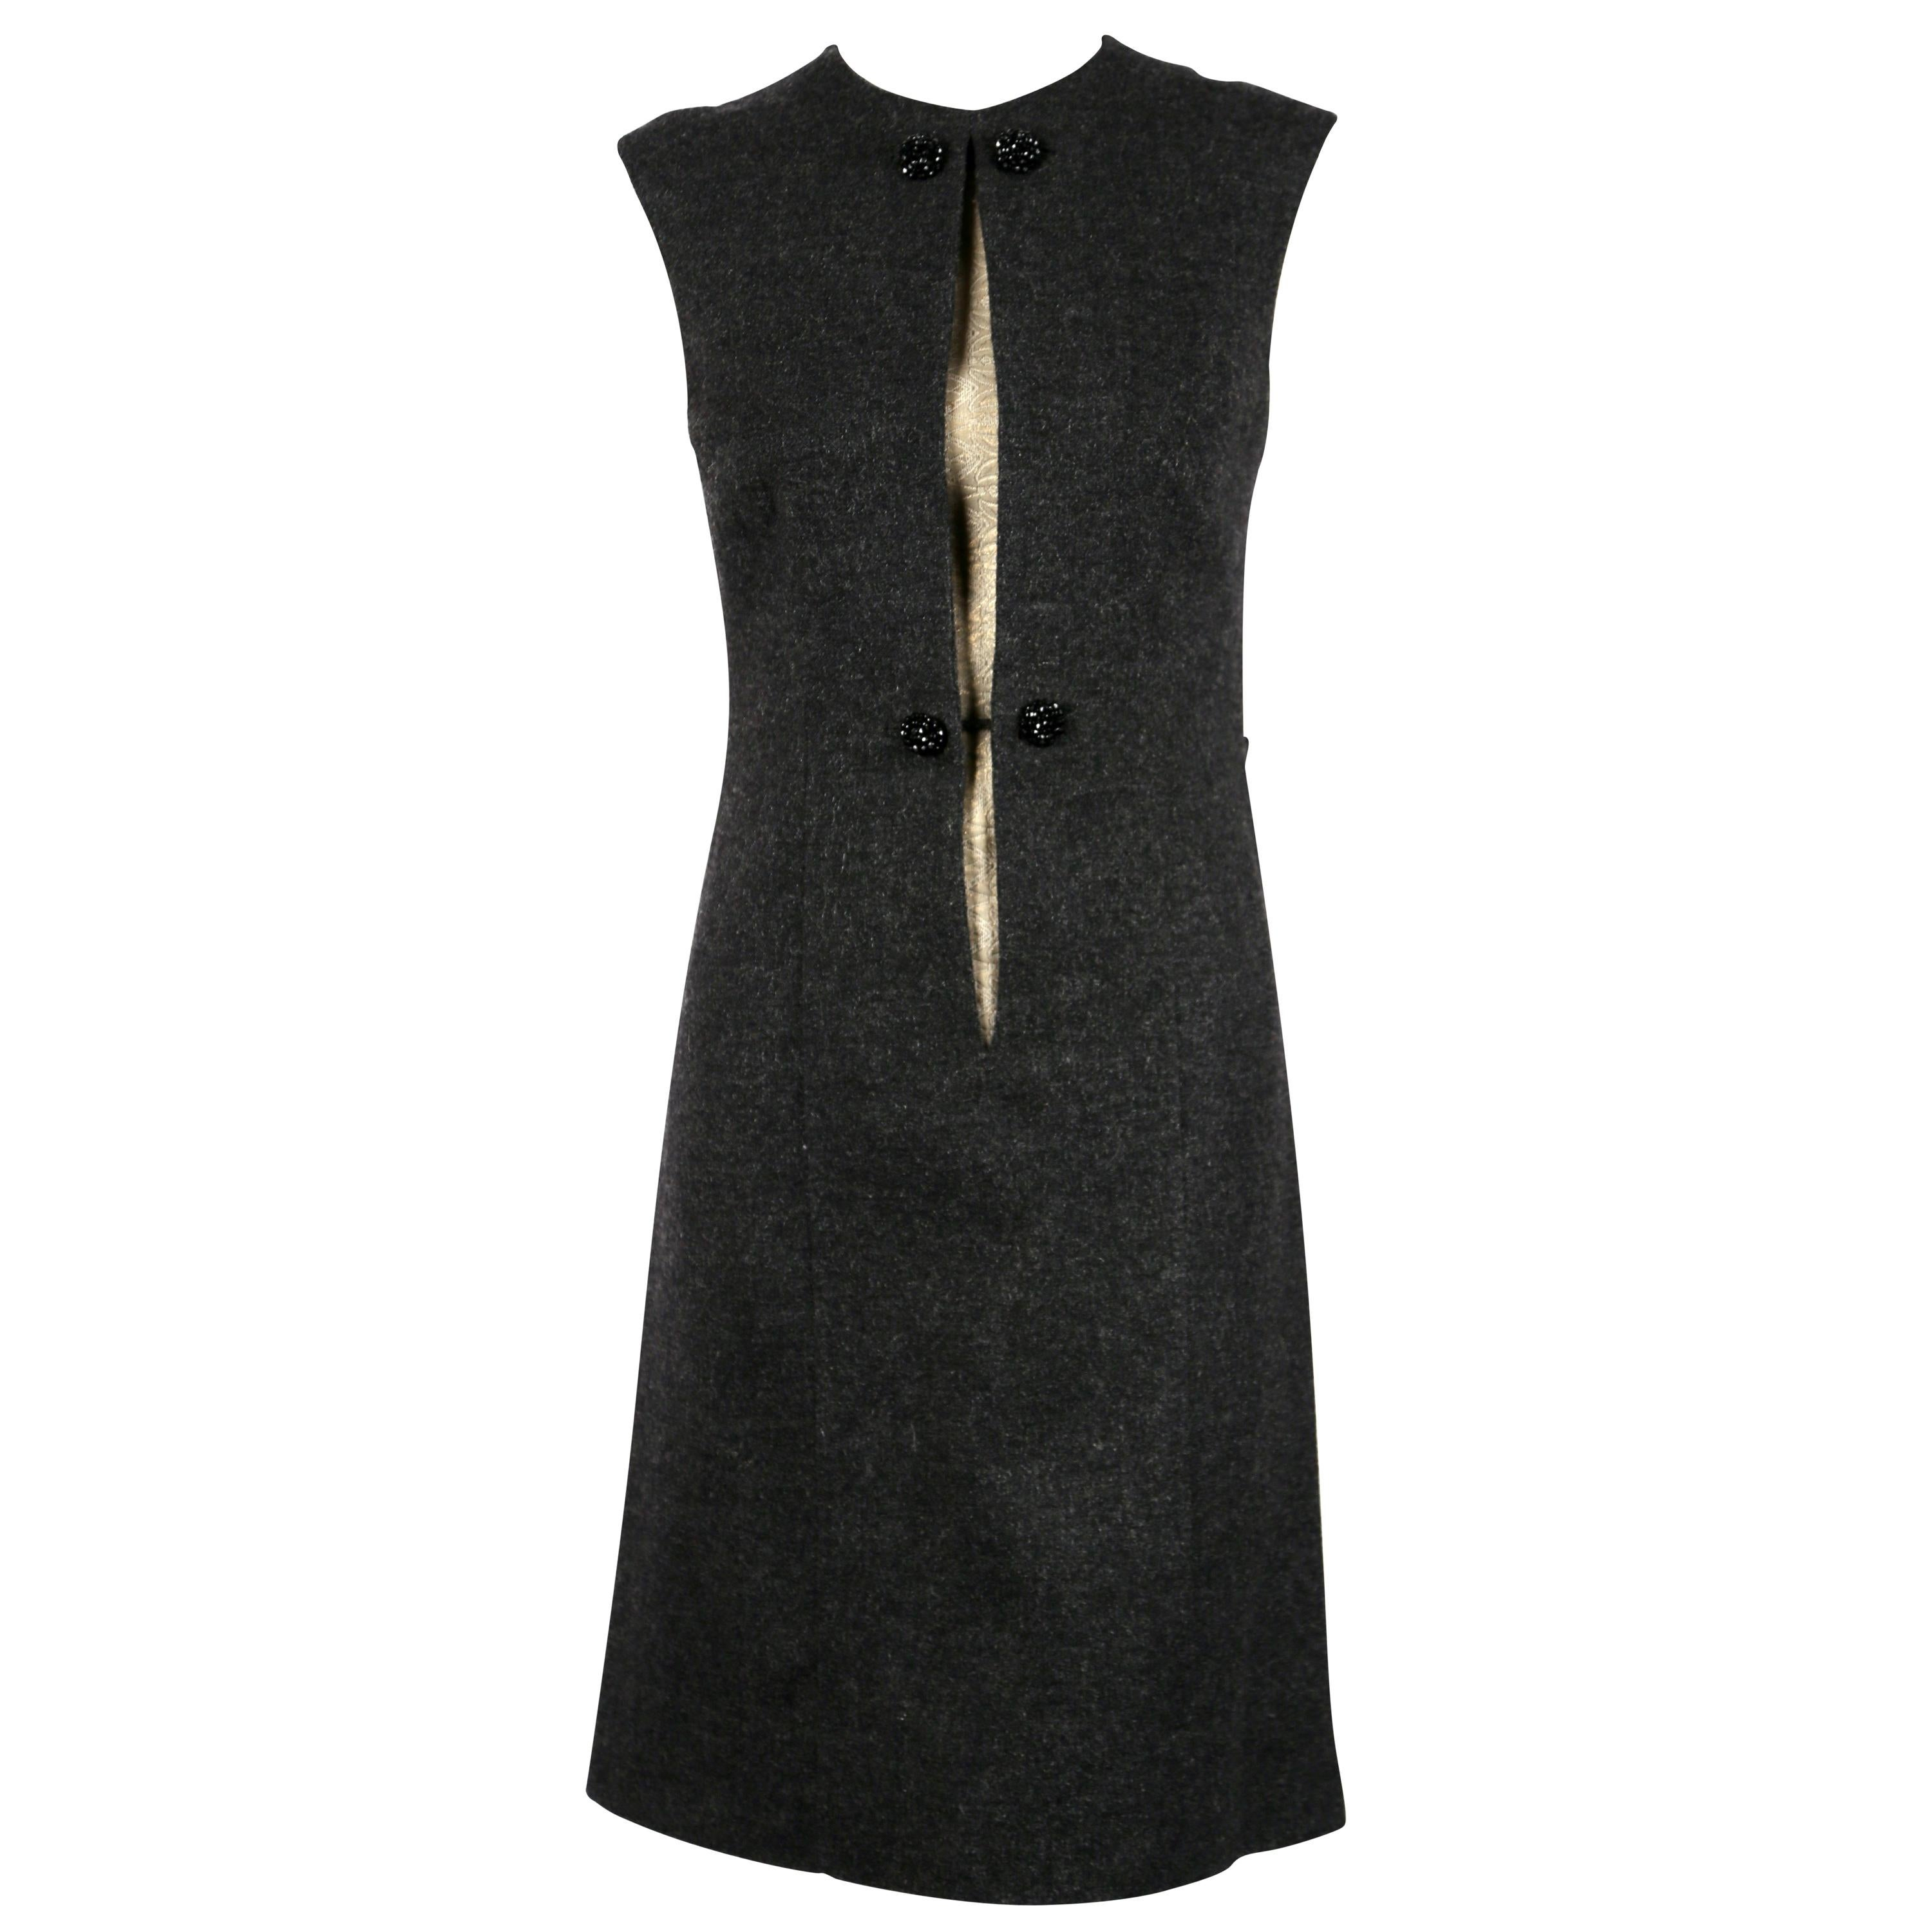 Sorelle Fontana charcoal grey wool dress with gold brocade detail, 1960s